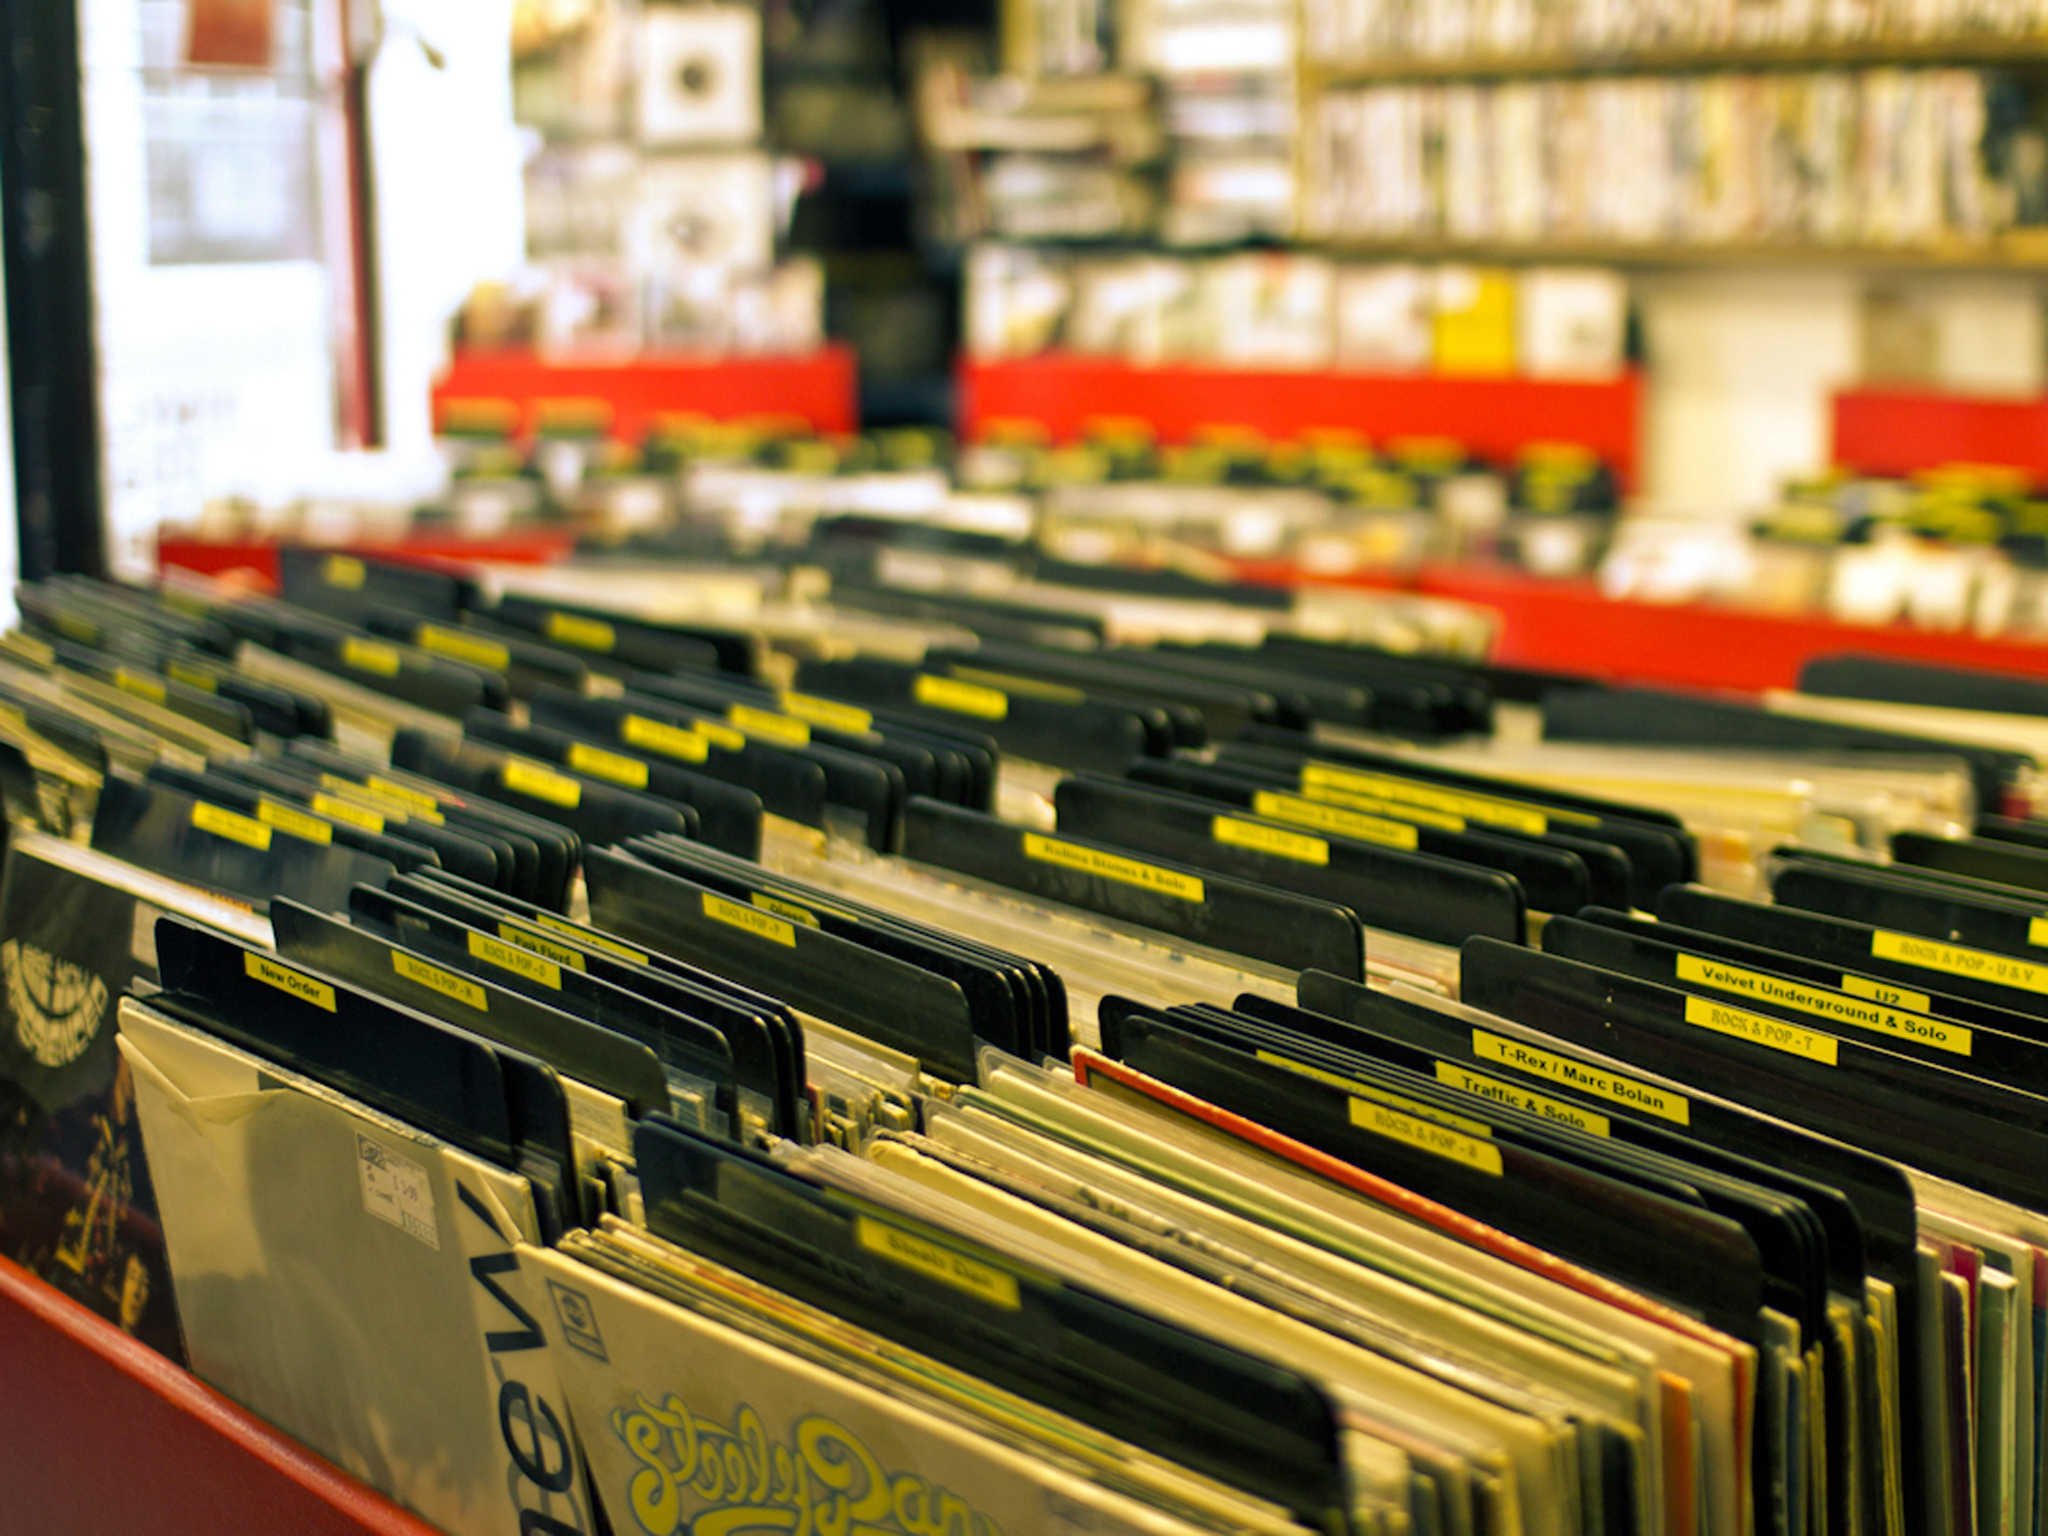 London's best record shops